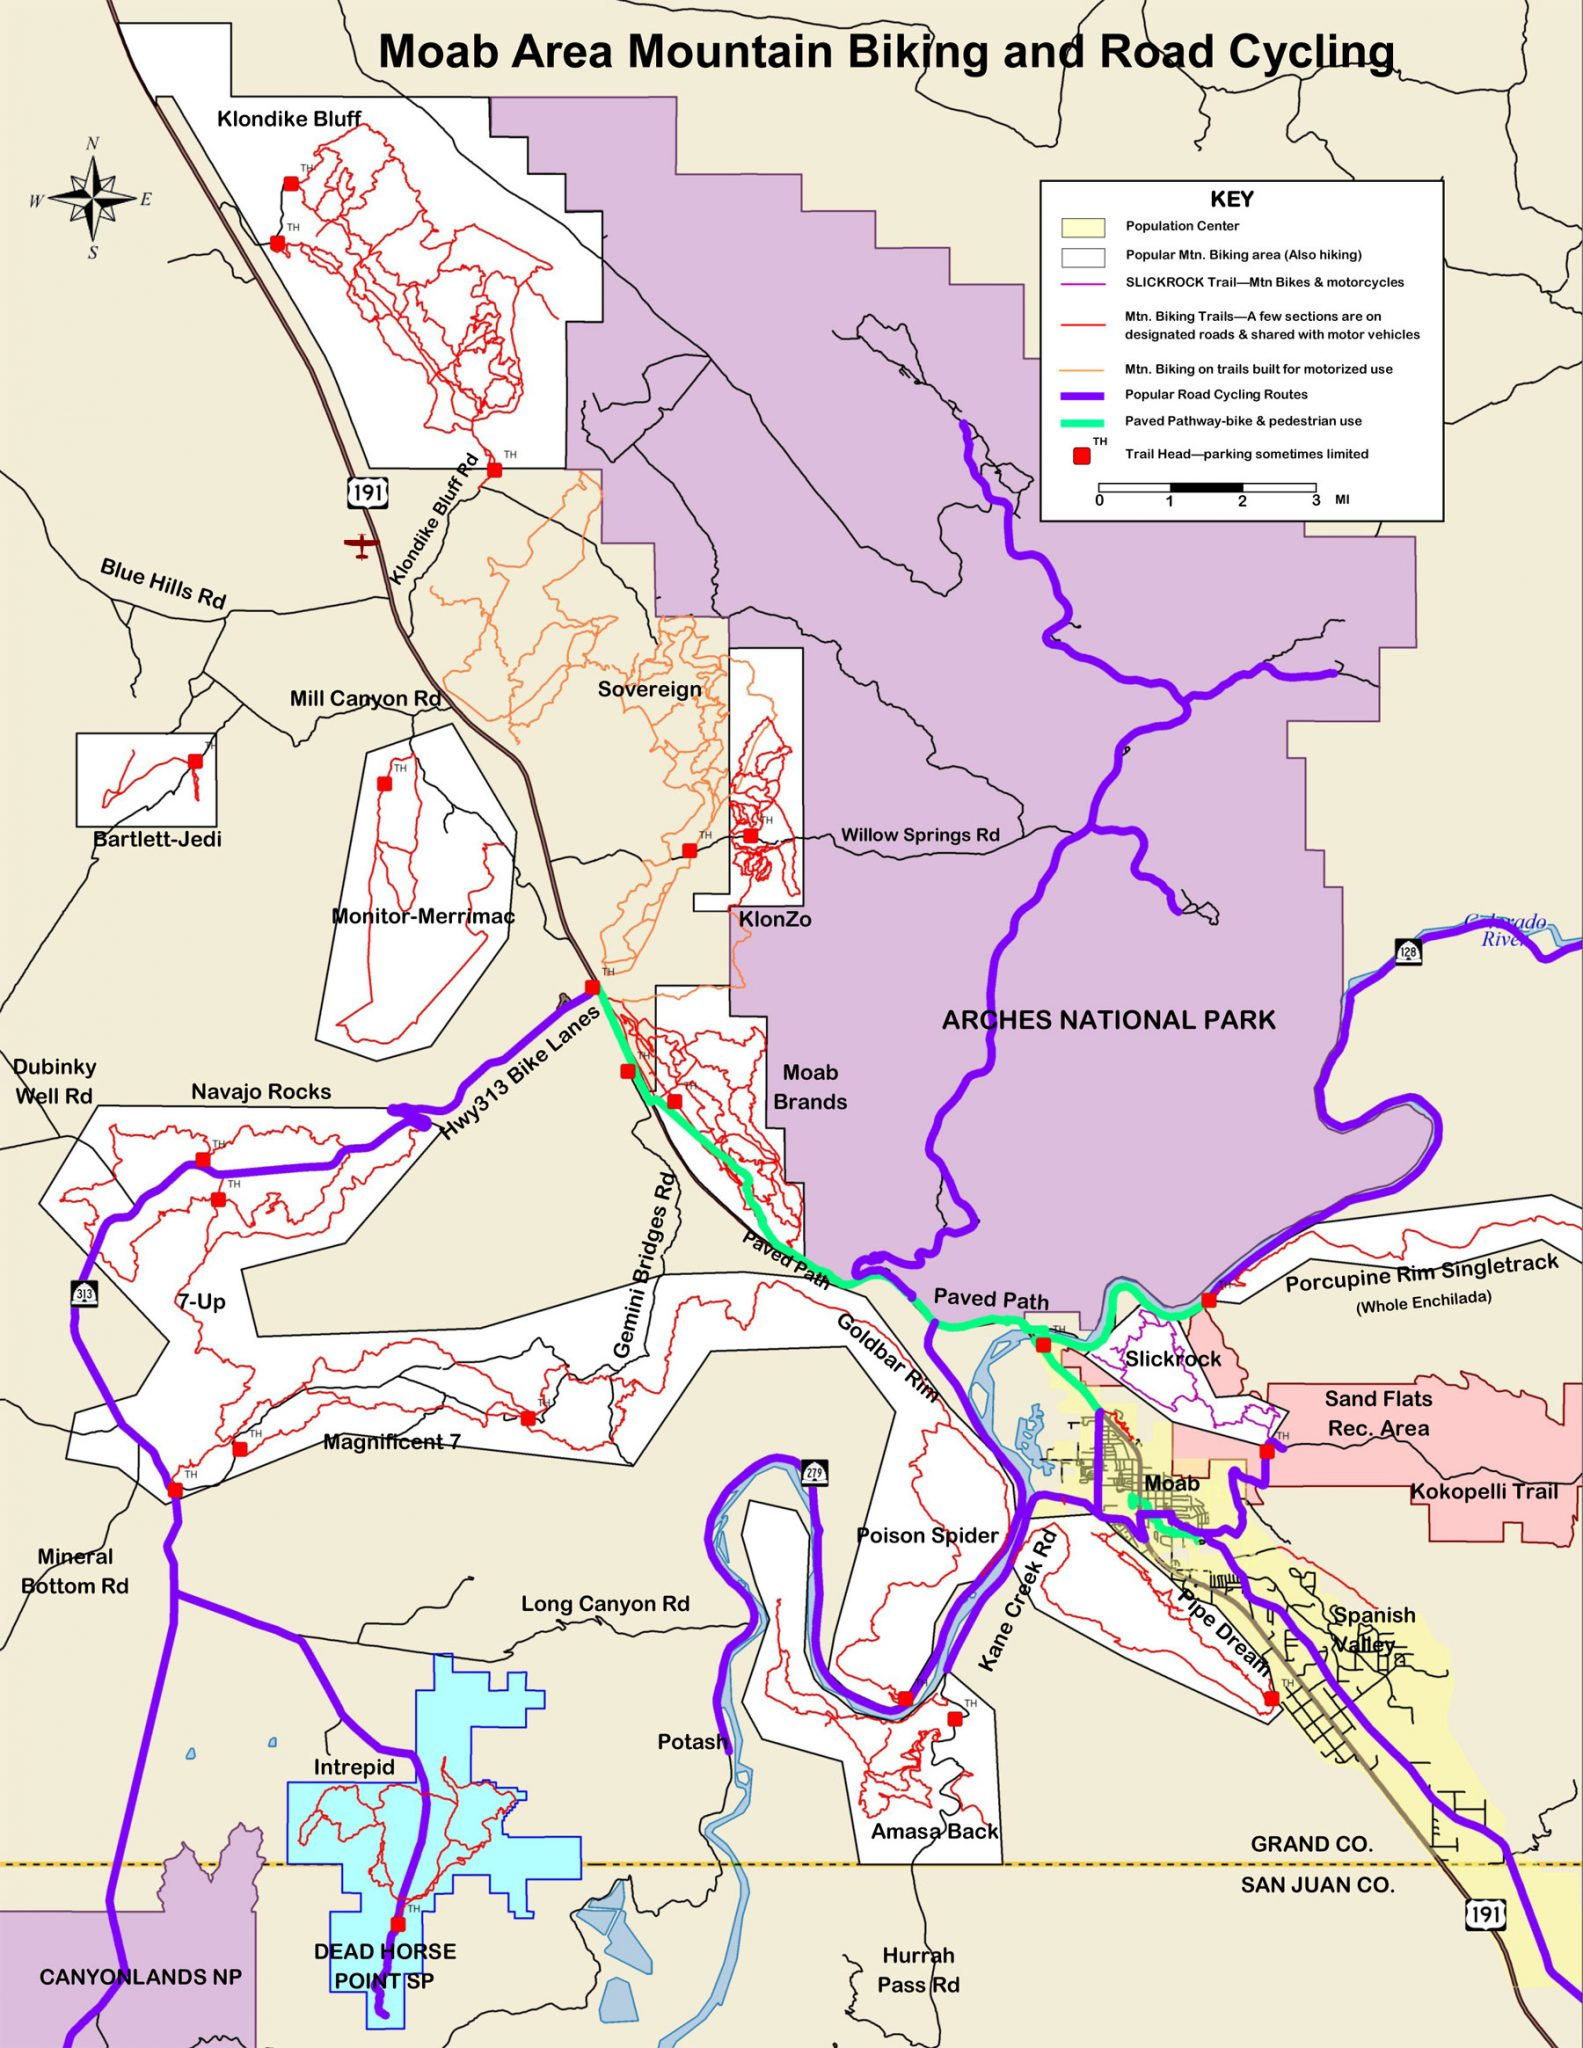 Map of Moab Mountain Bike Trails